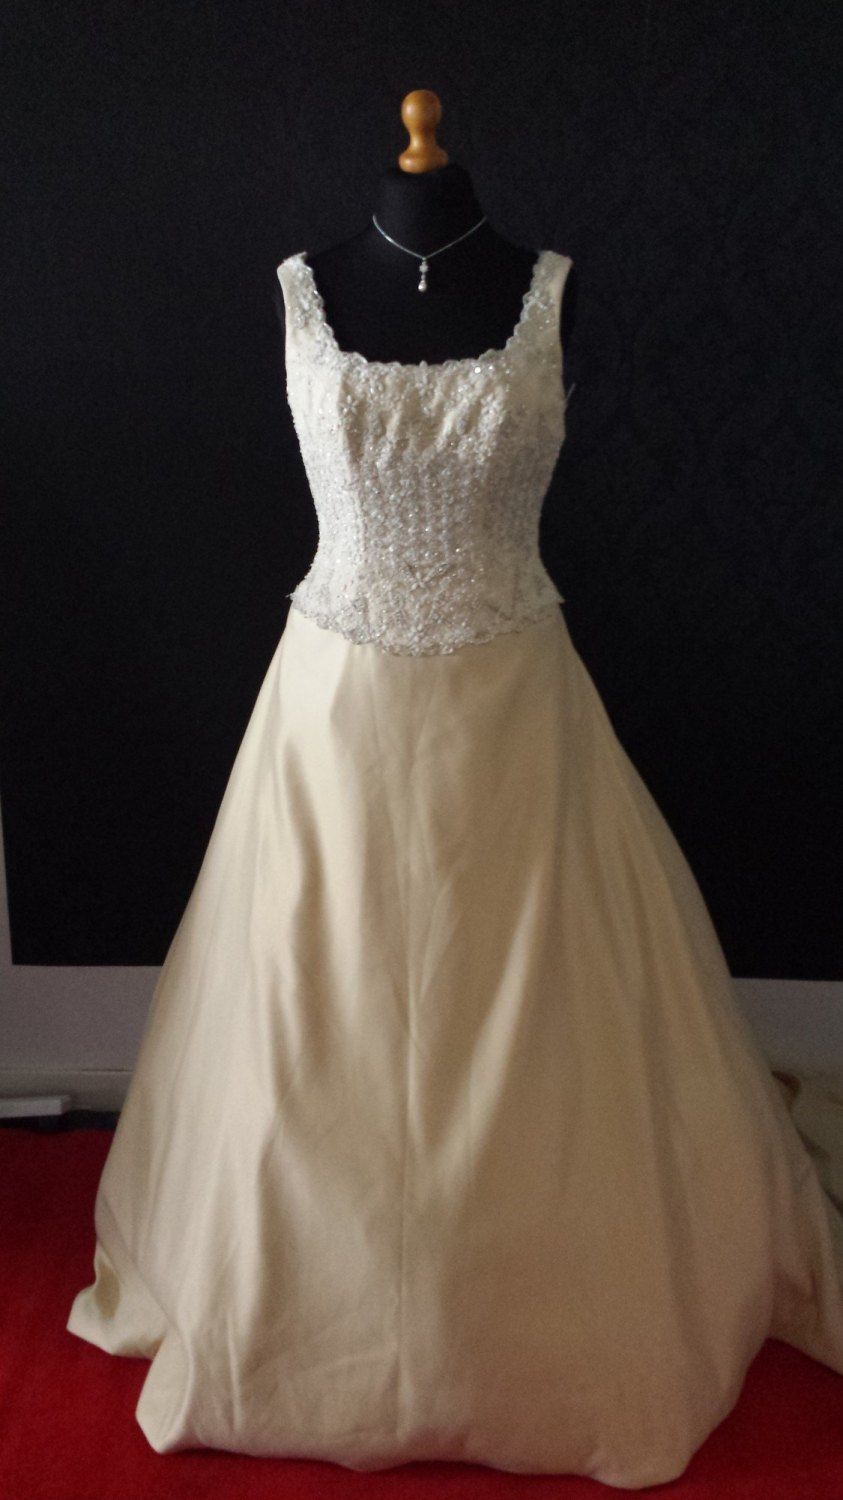 NEW MoriLee Gold Wedding Gown with Train - Size 16